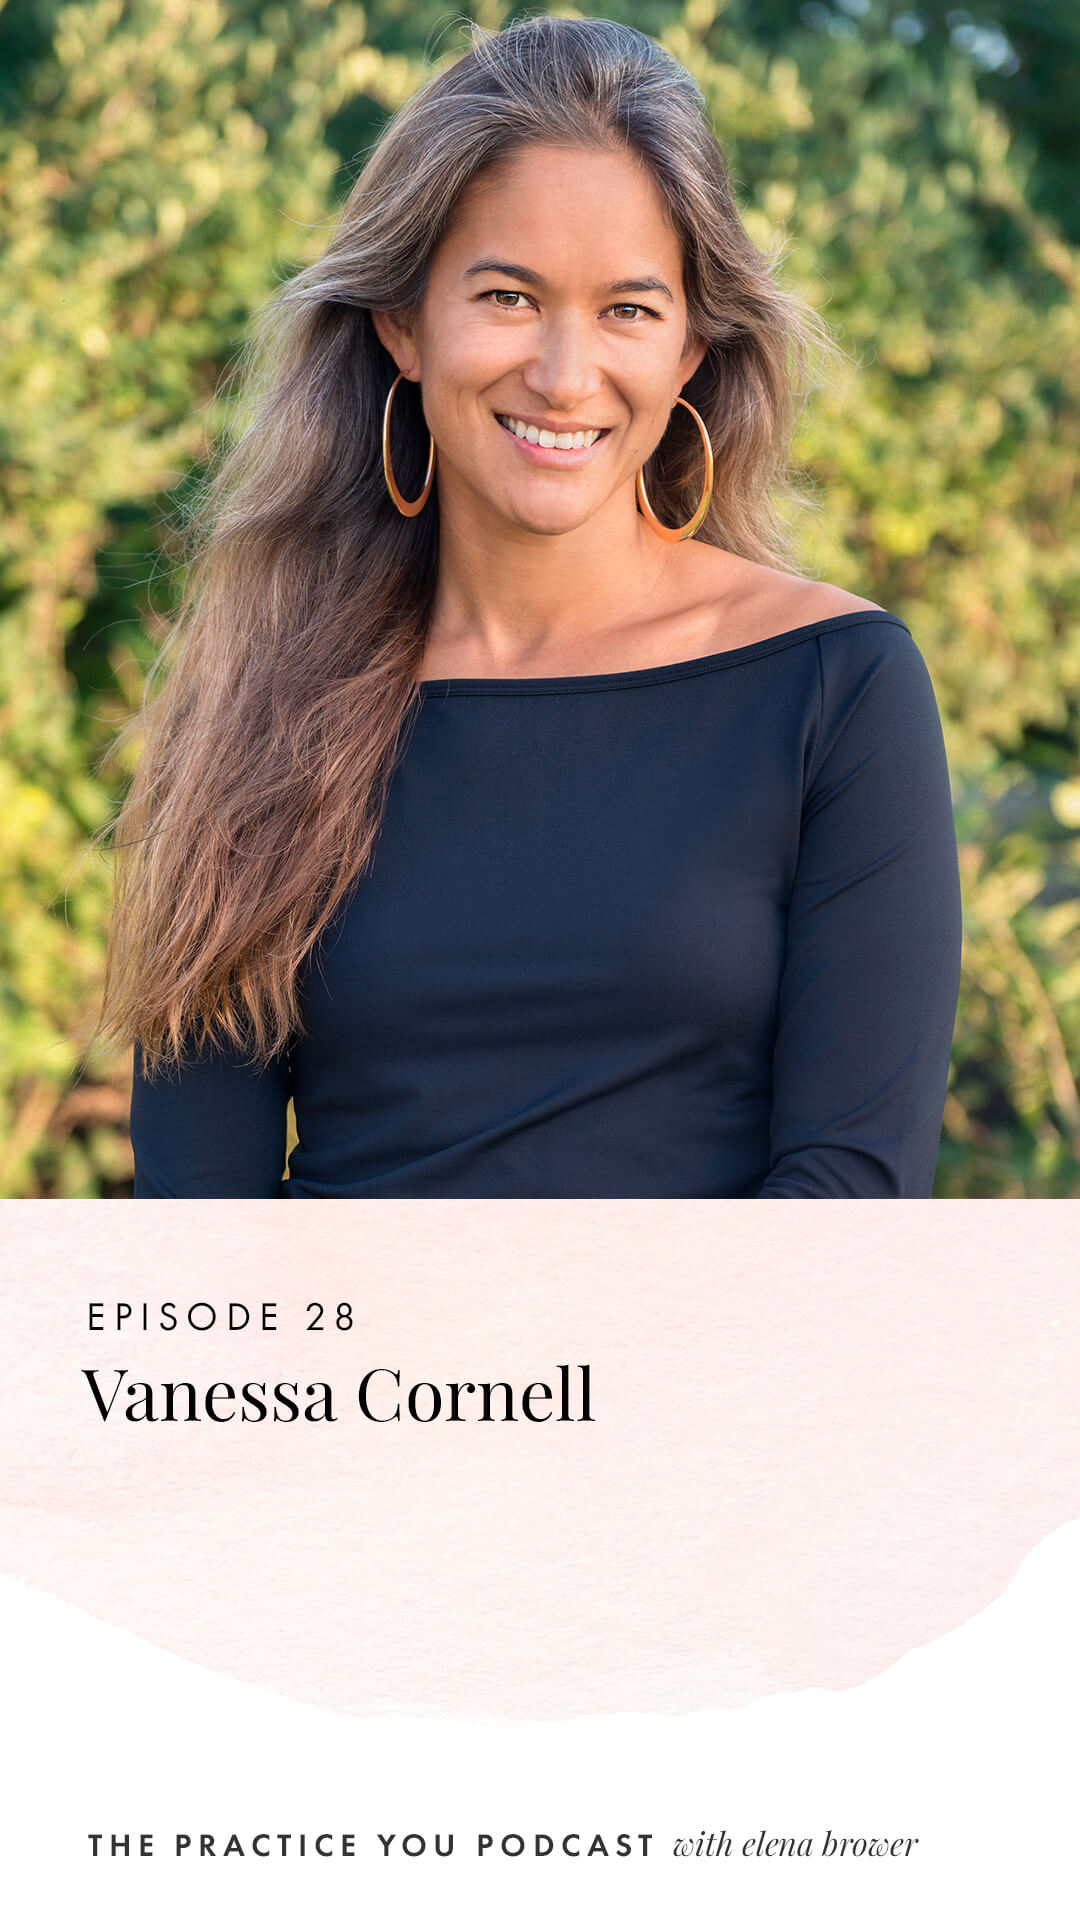 Episode 28: Vanessa Cornell on the Practice You Podcast with Elena Brower